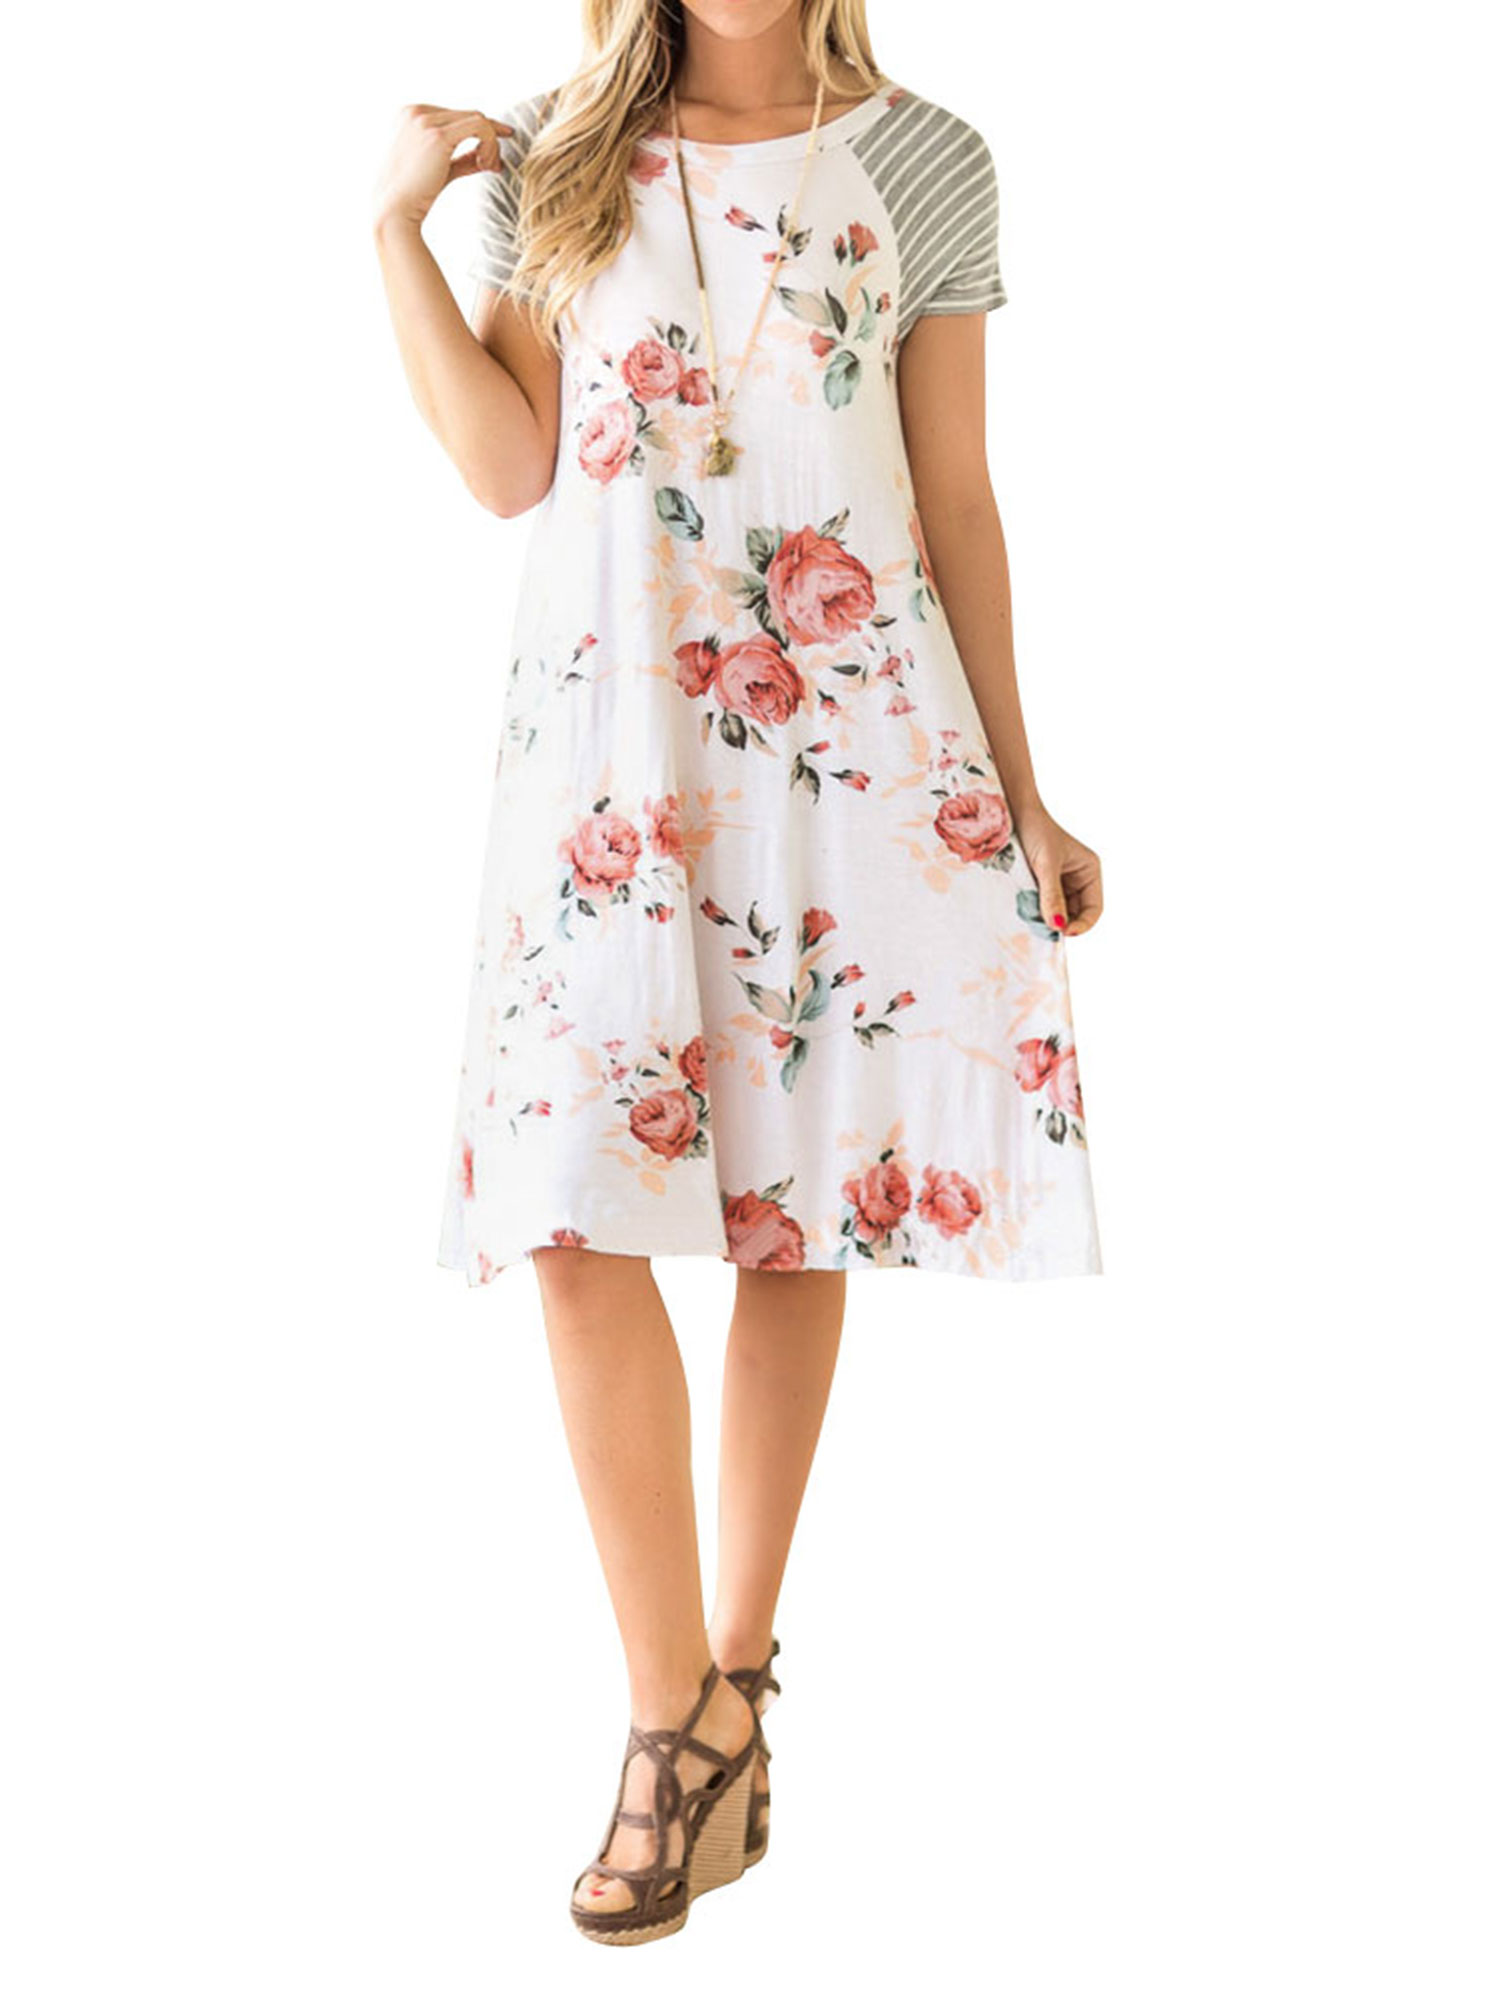 Nlife Women Striped Sleeve Floral Print A-line T-shirt Dress